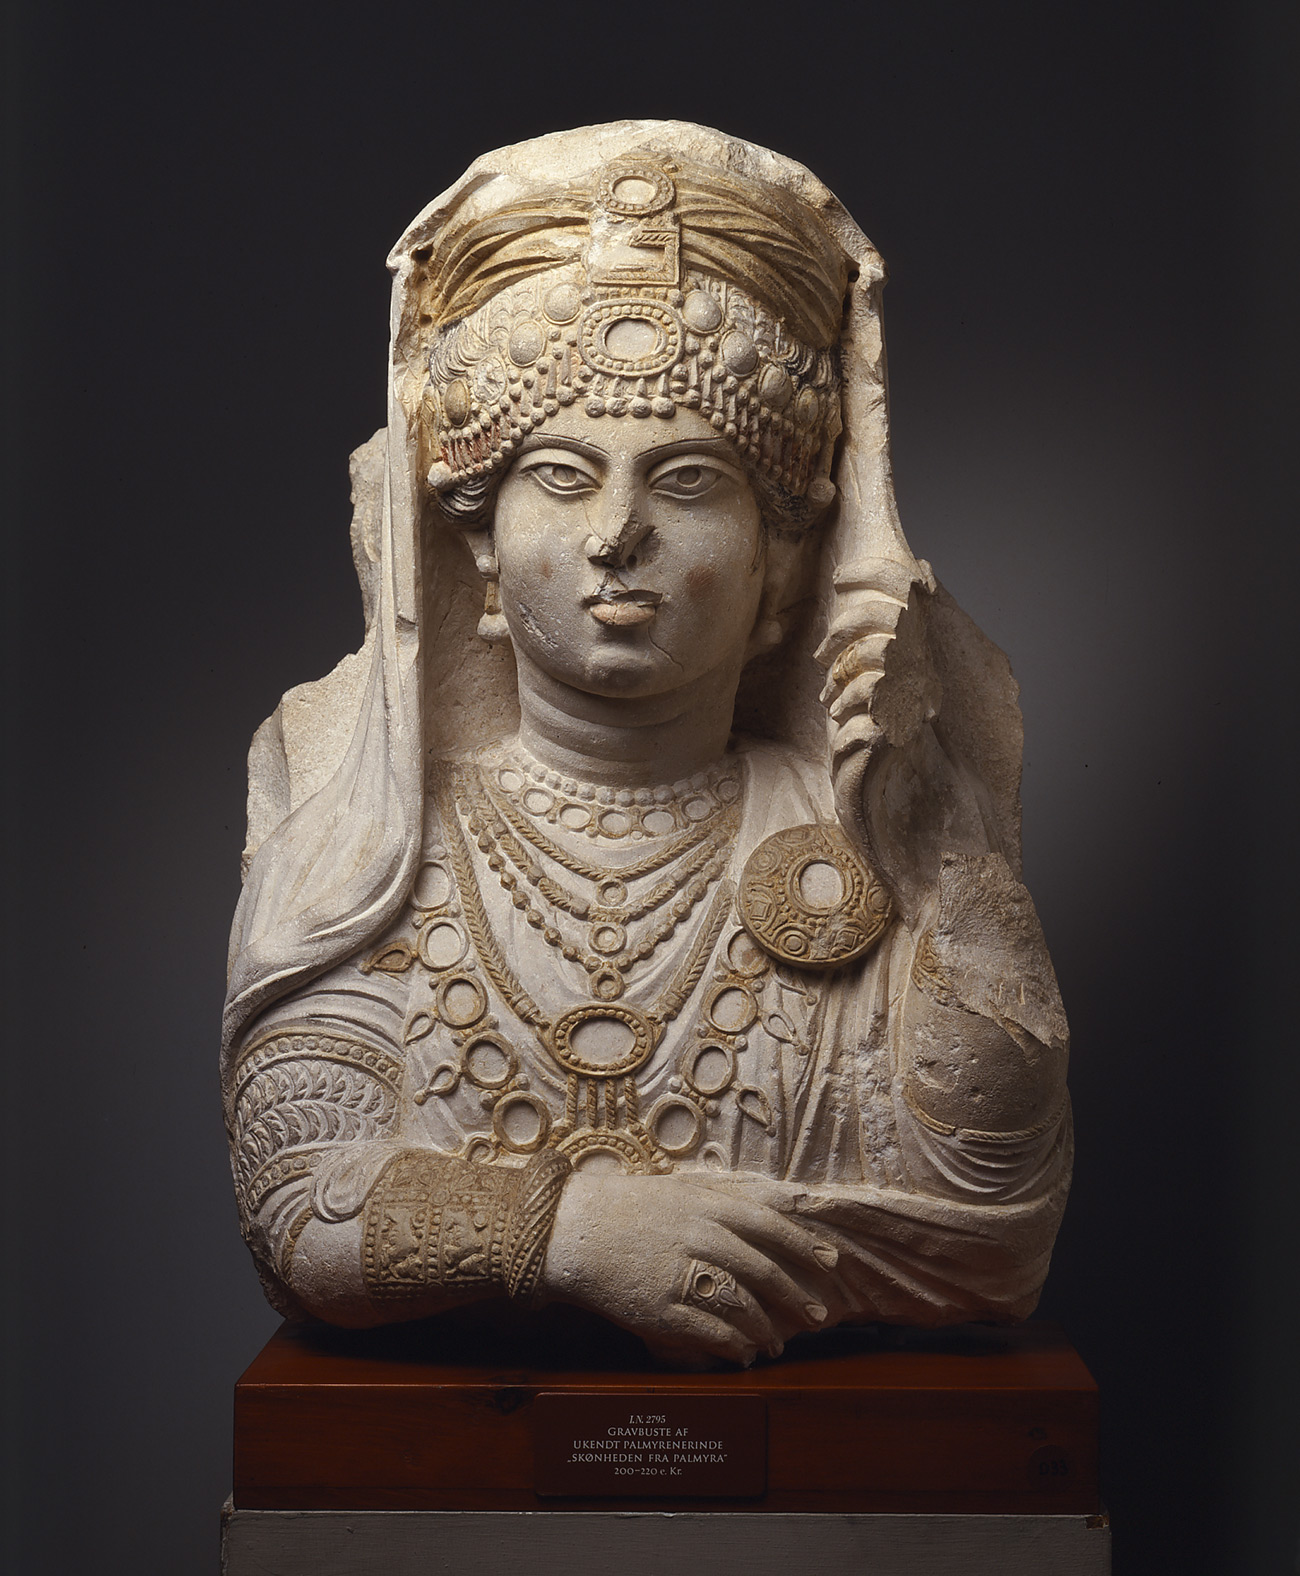 Limestone bust of an ancient Palmyrene woman wearing an elaborate headdress and seven necklaces